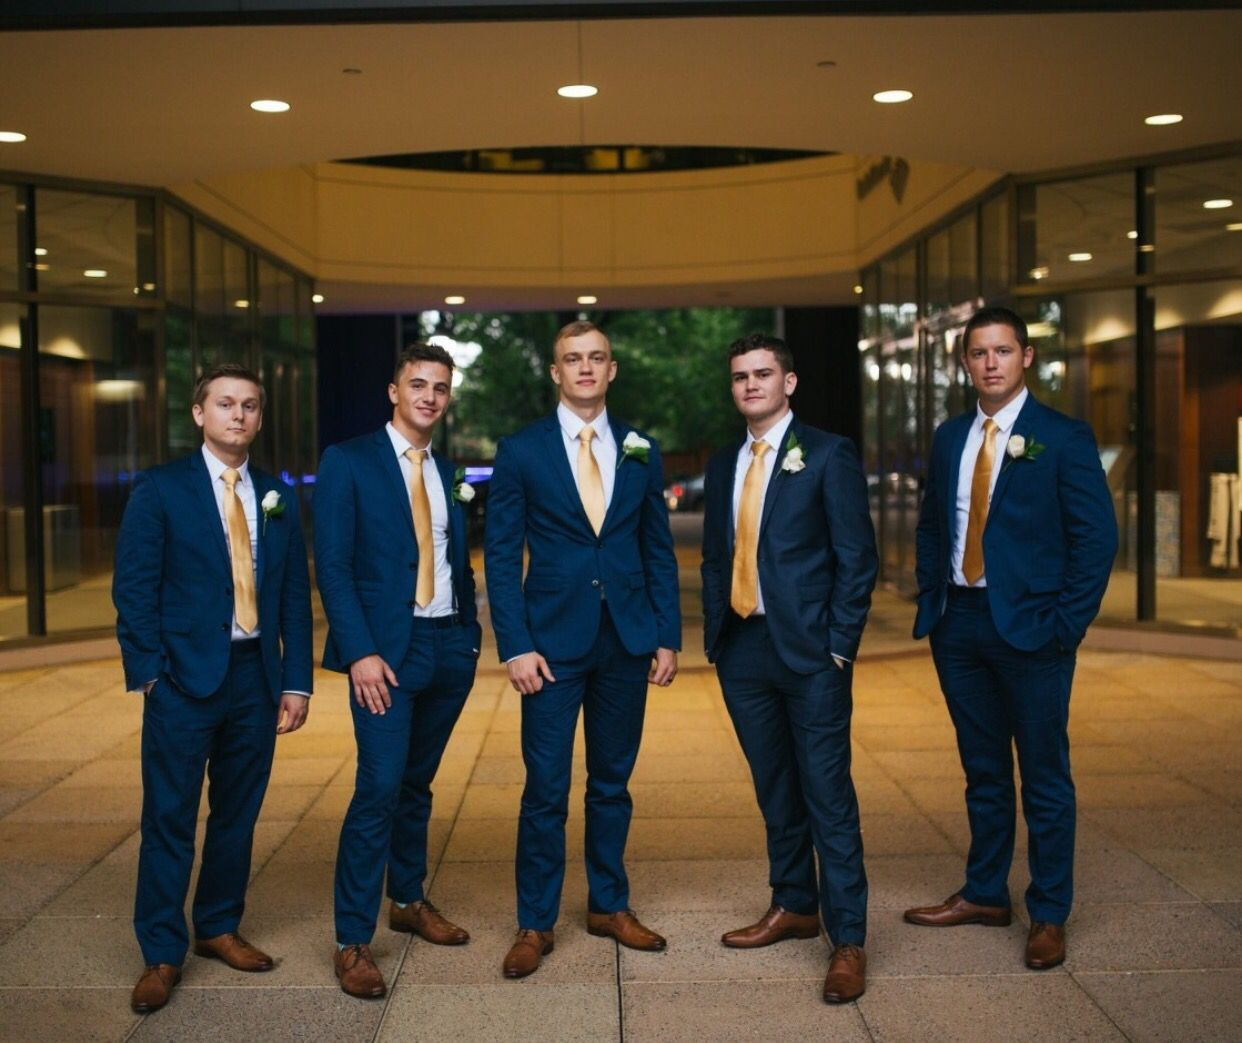 Grooms navy suits and gold ties ! | Wedding Ideas | Pinterest ...